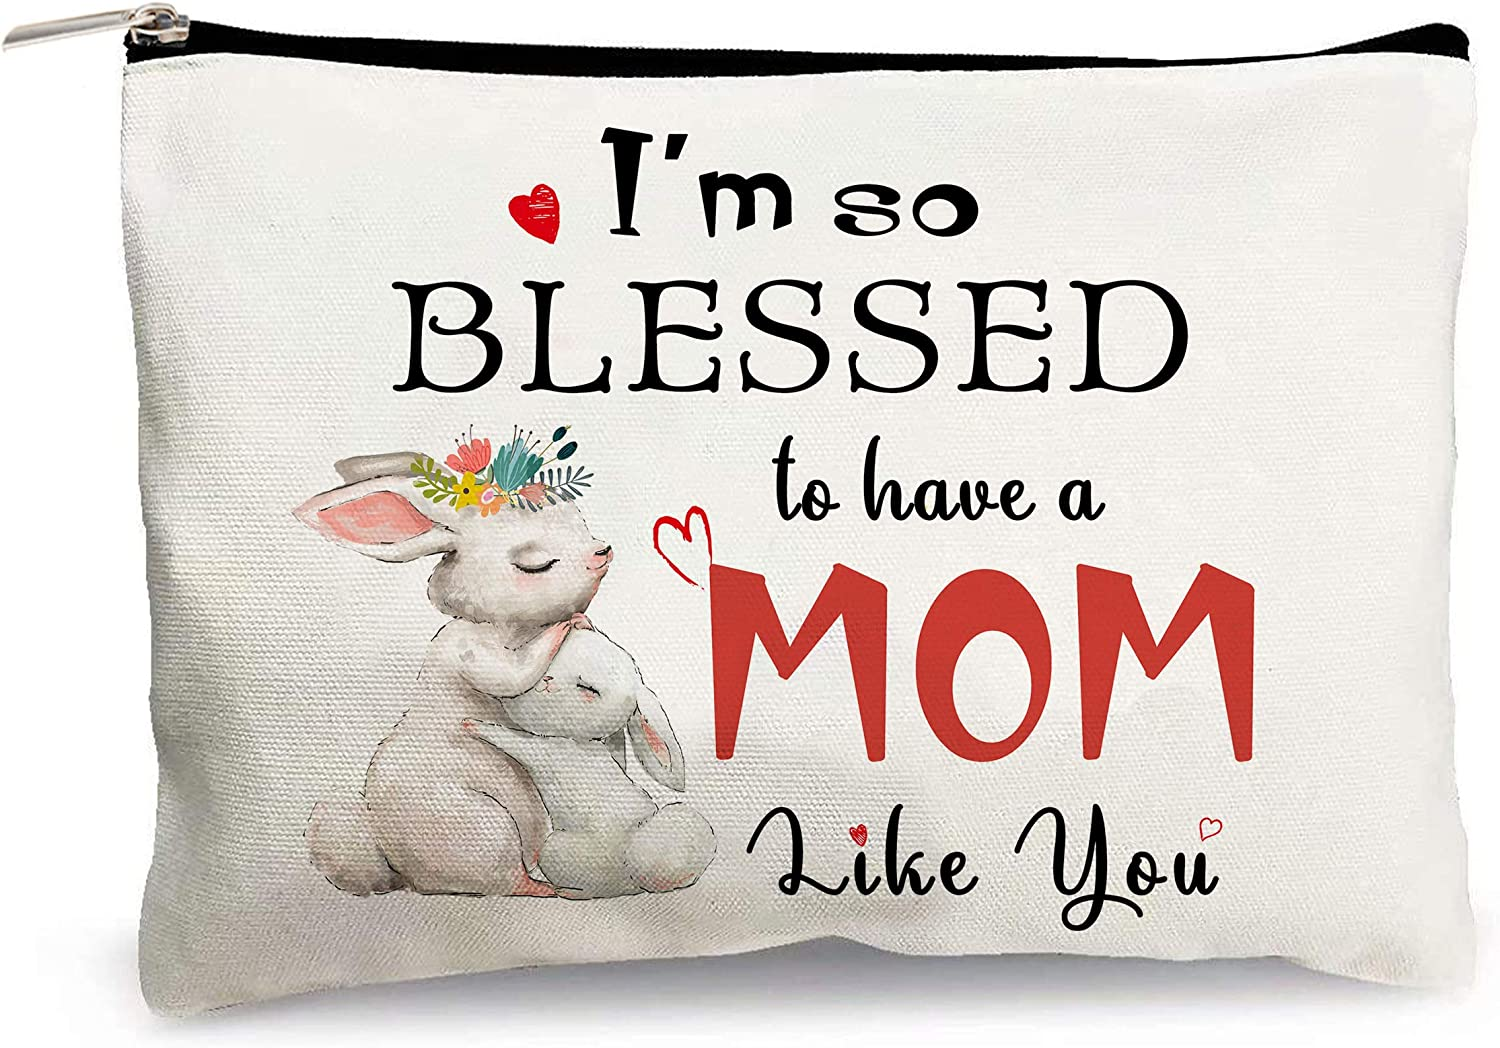 Crapopo Gift for Mother Cosmetic Bag-I'm Mo New popularity A Virginia Beach Mall to Have So Blessed